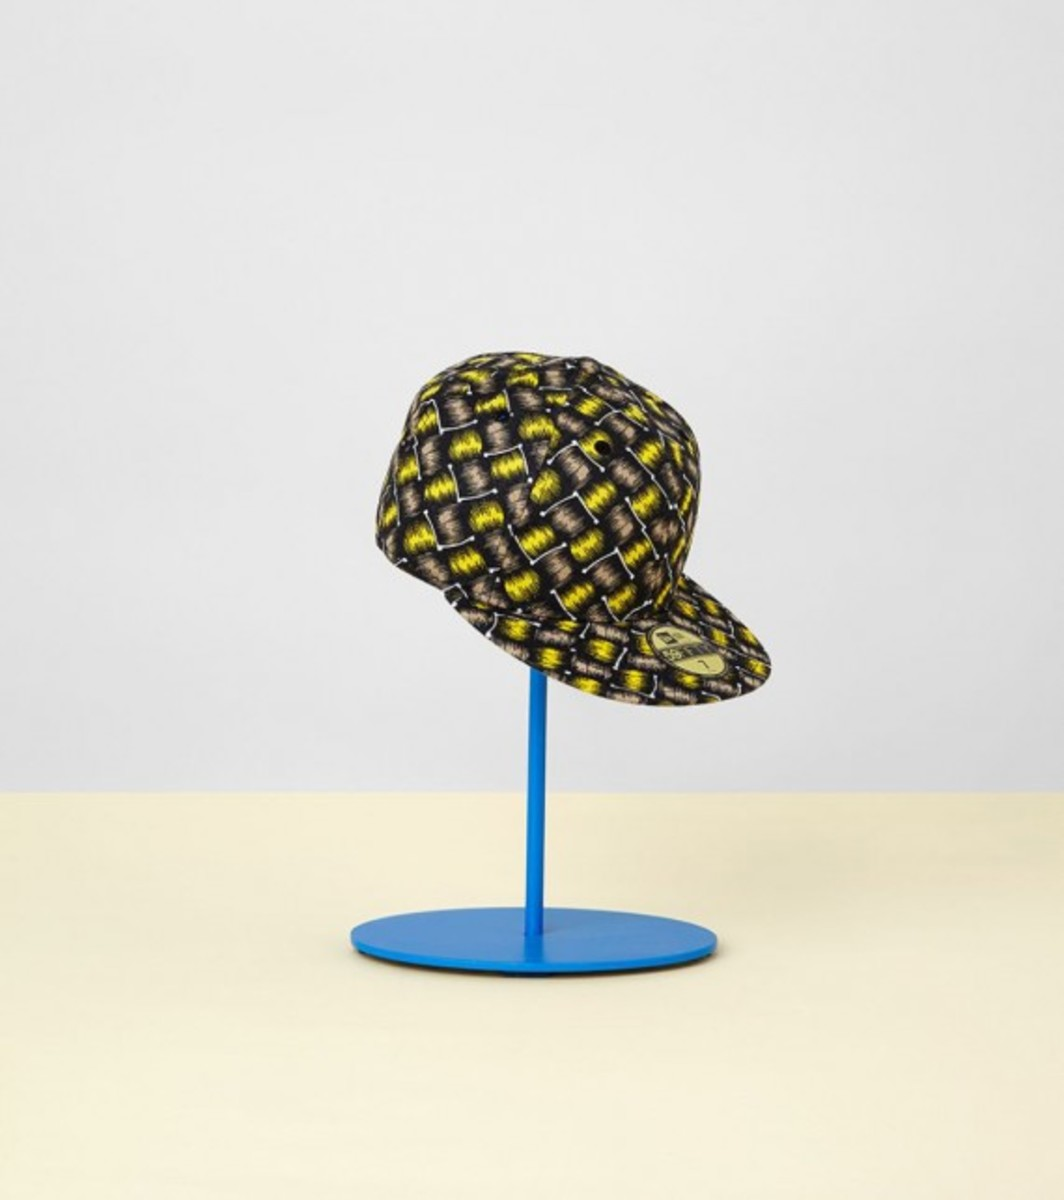 kenzo-new-era-spring-summer-2013-cap-collection-04